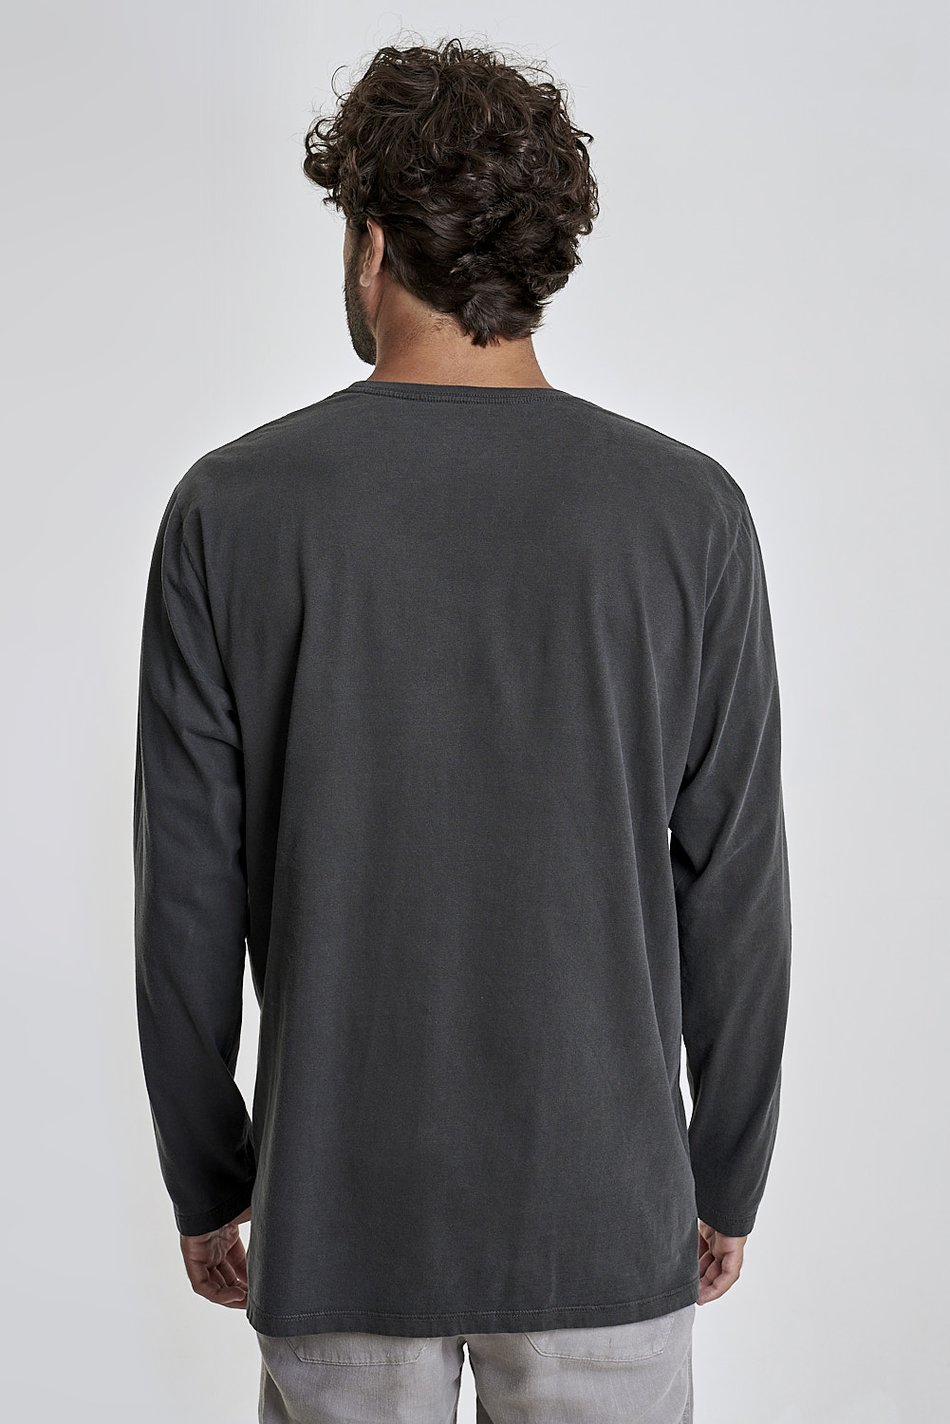 Camiseta Austral ML Basic Noir